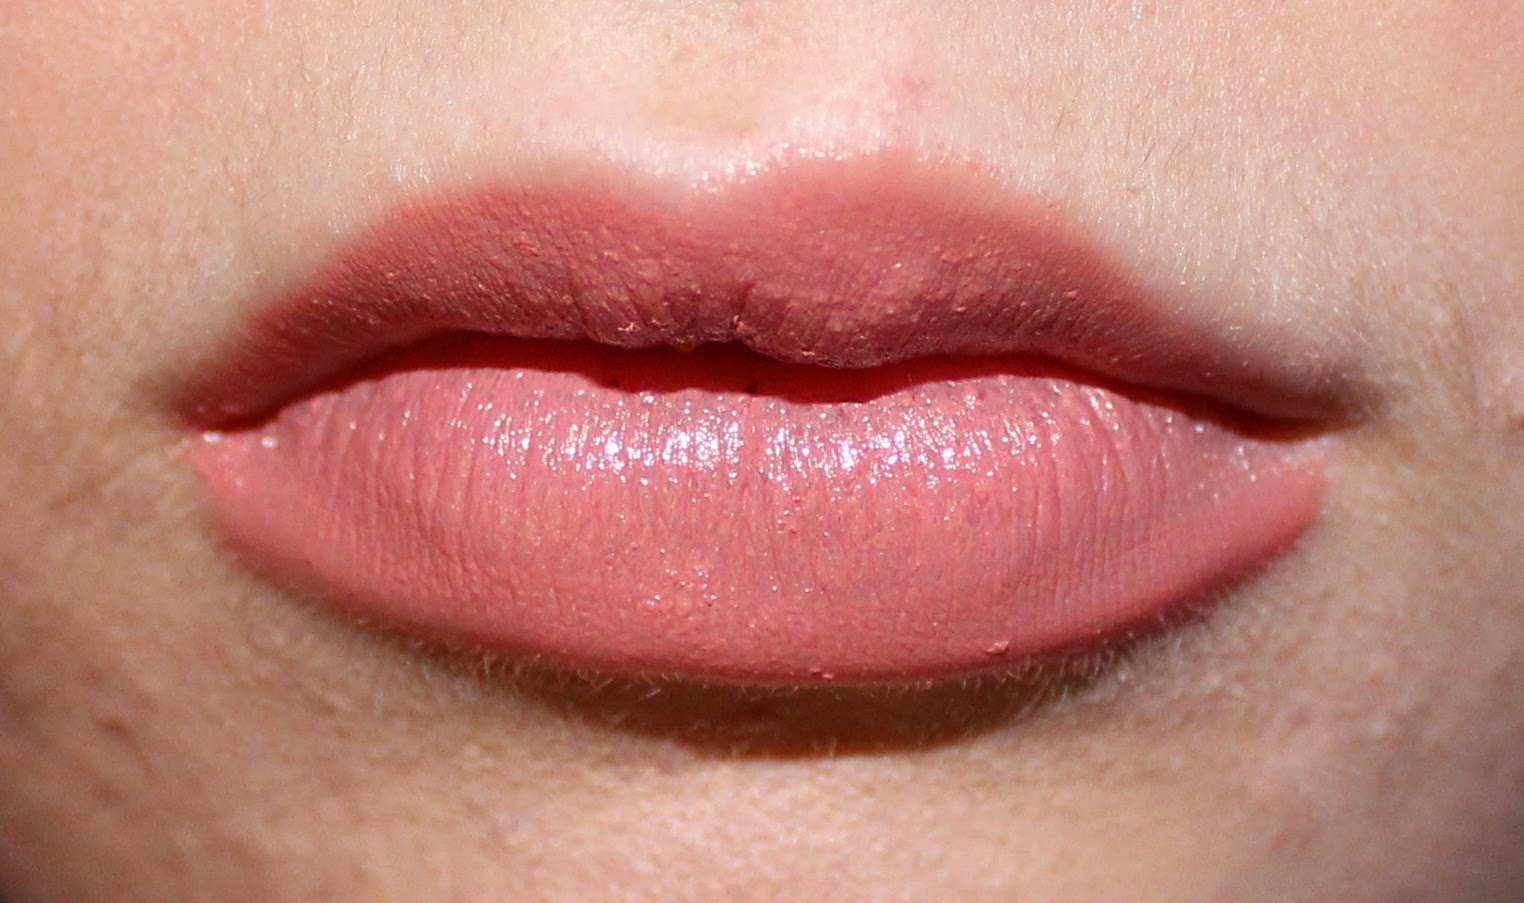 Burberry Lip Cover in Tulip Pink No. 27